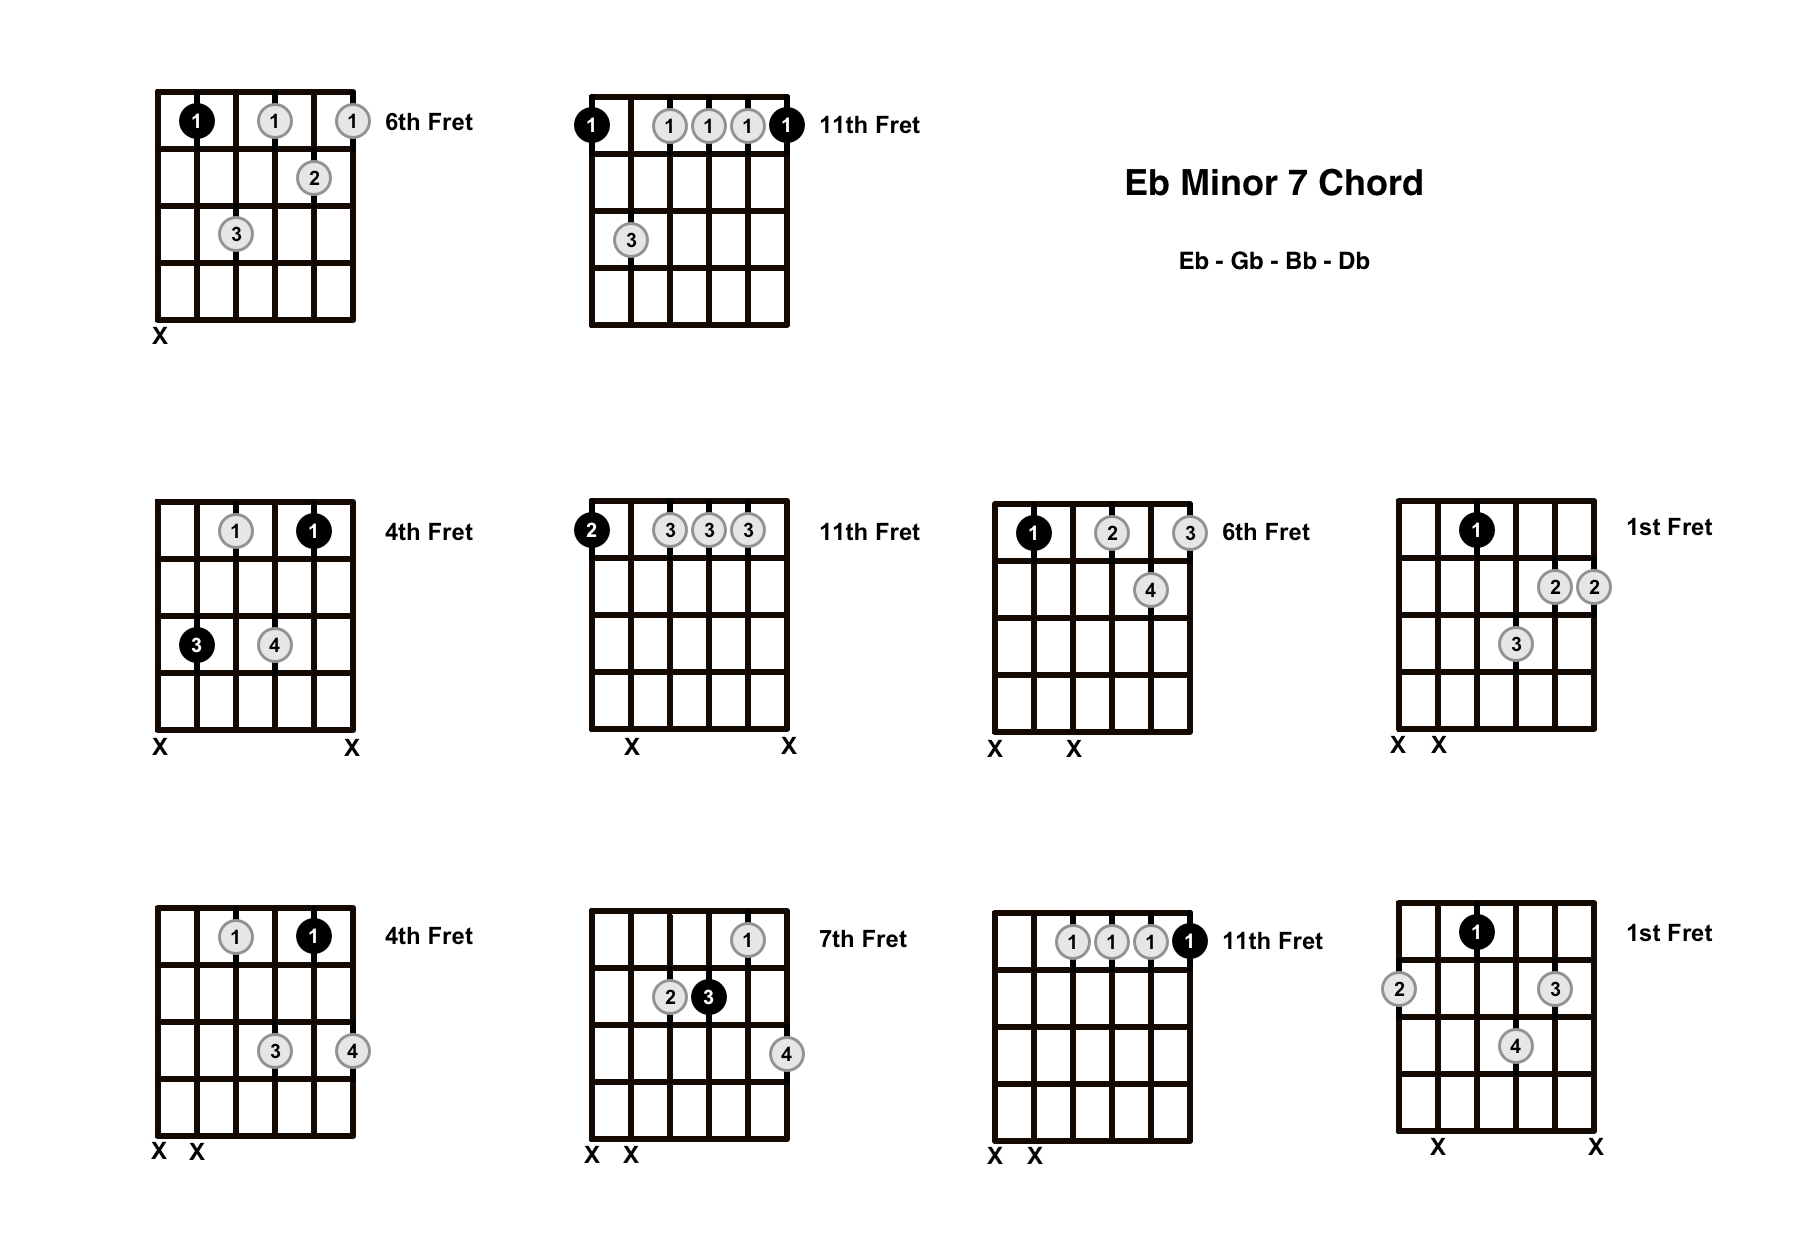 Ebm7 Chord on the Guitar (E Flat Minor 7) – Diagrams, Finger Positions, Theory